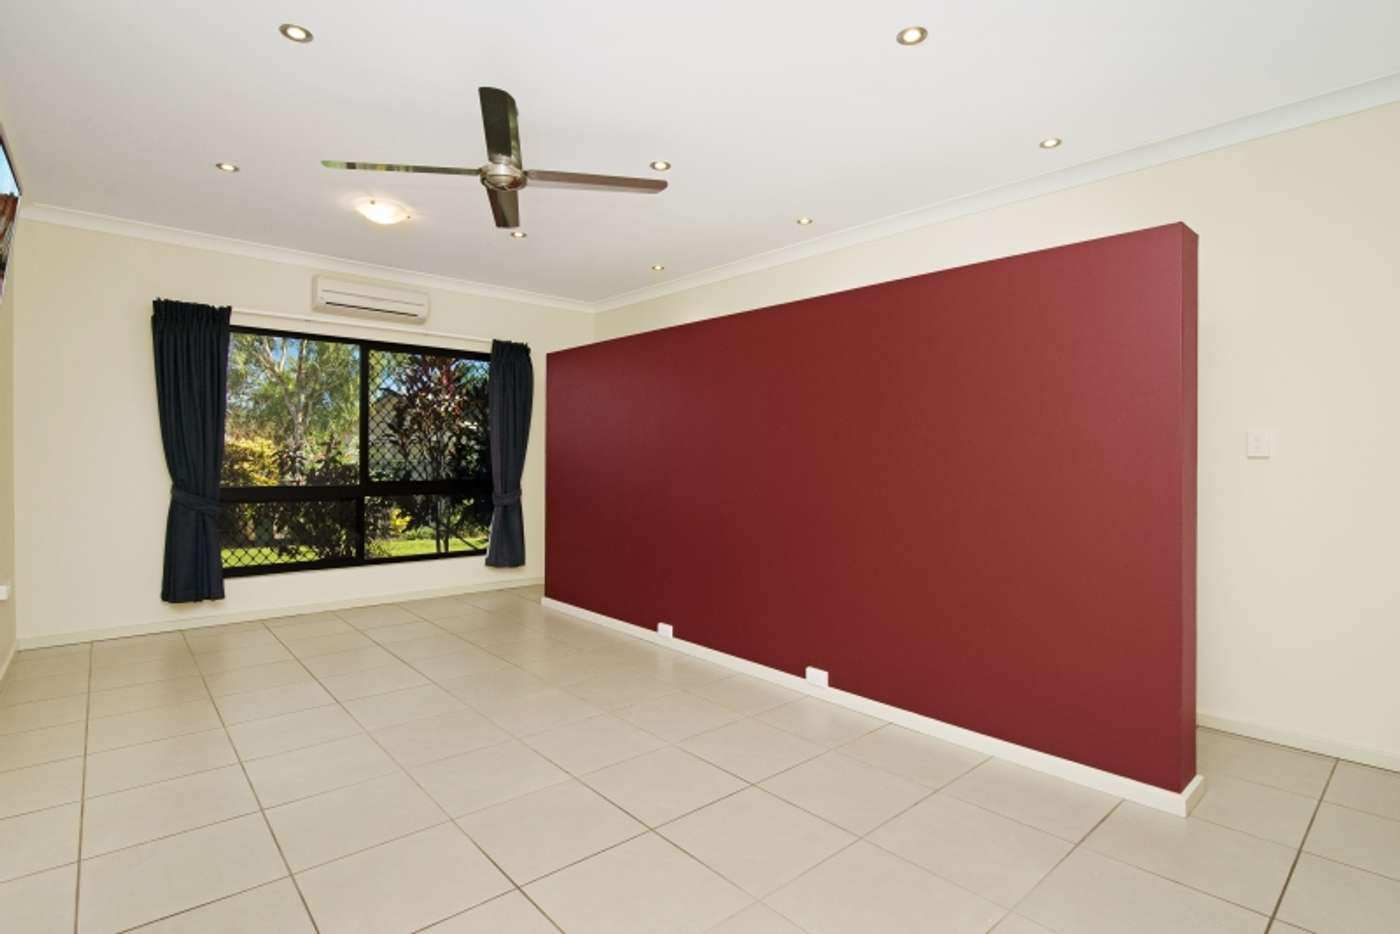 Seventh view of Homely house listing, 32 Bryden Street, Rosebery NT 832